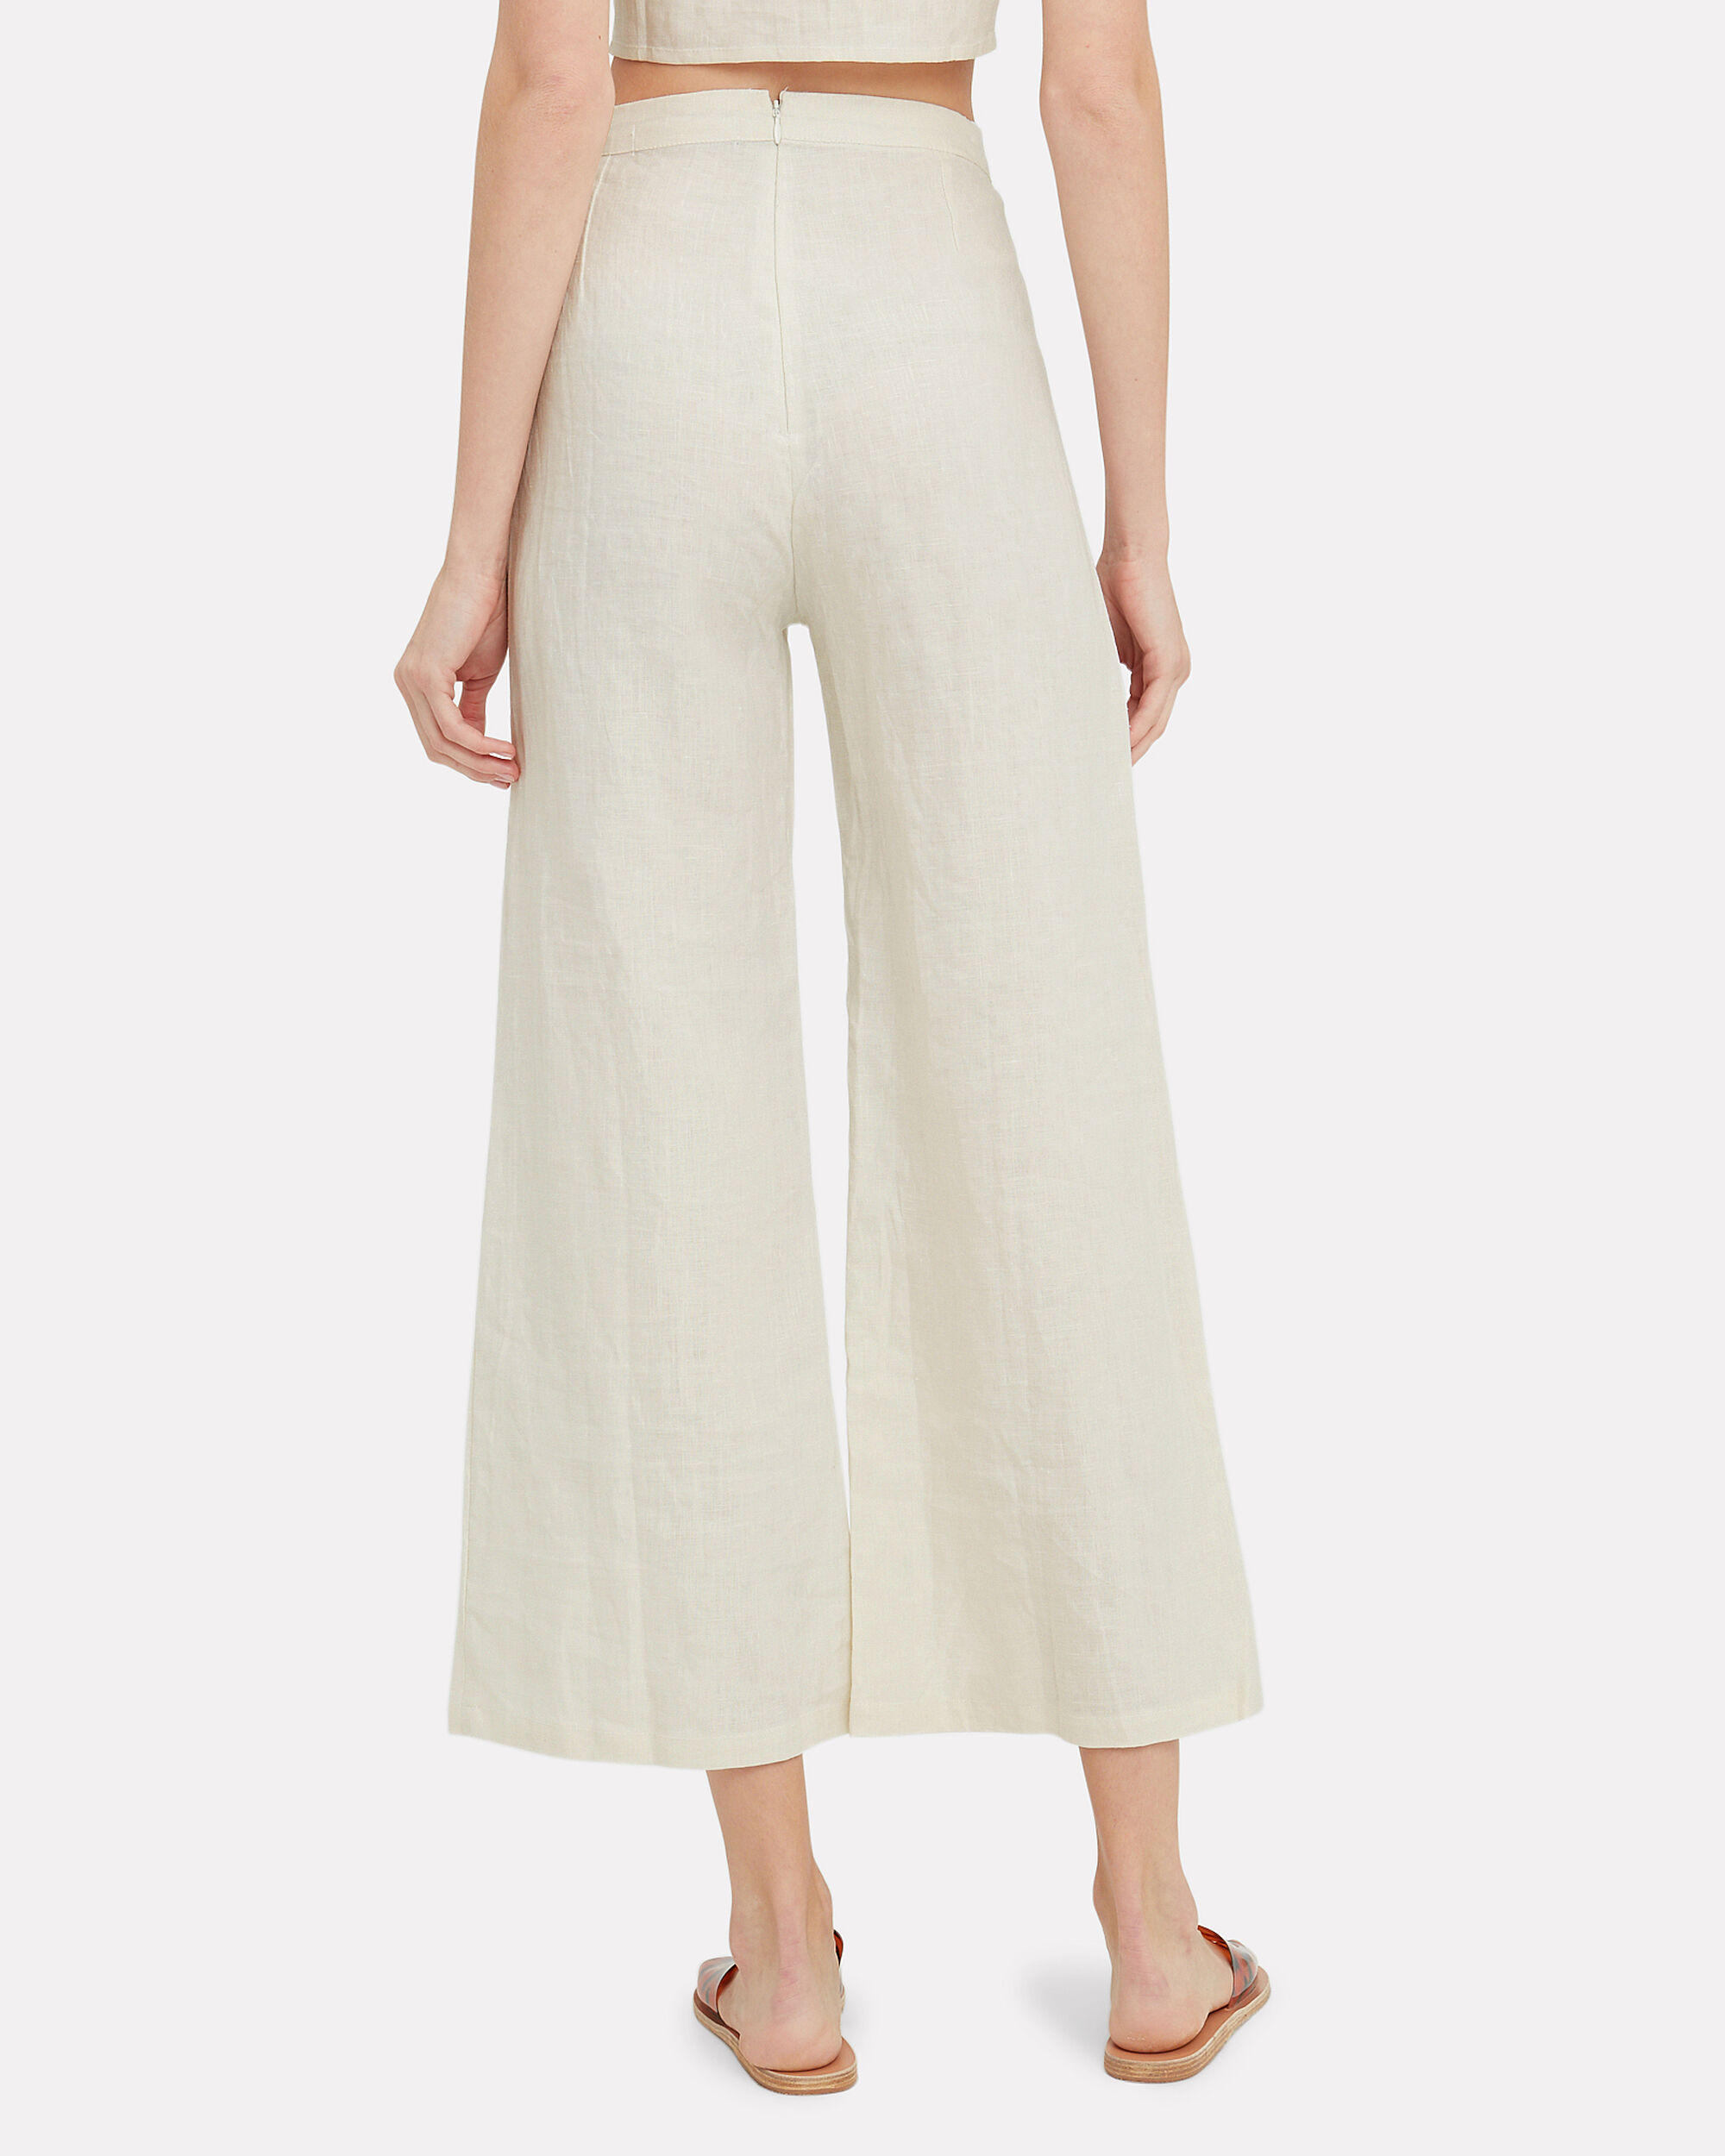 Scelsi High-Rise Trousers, IVORY, hi-res